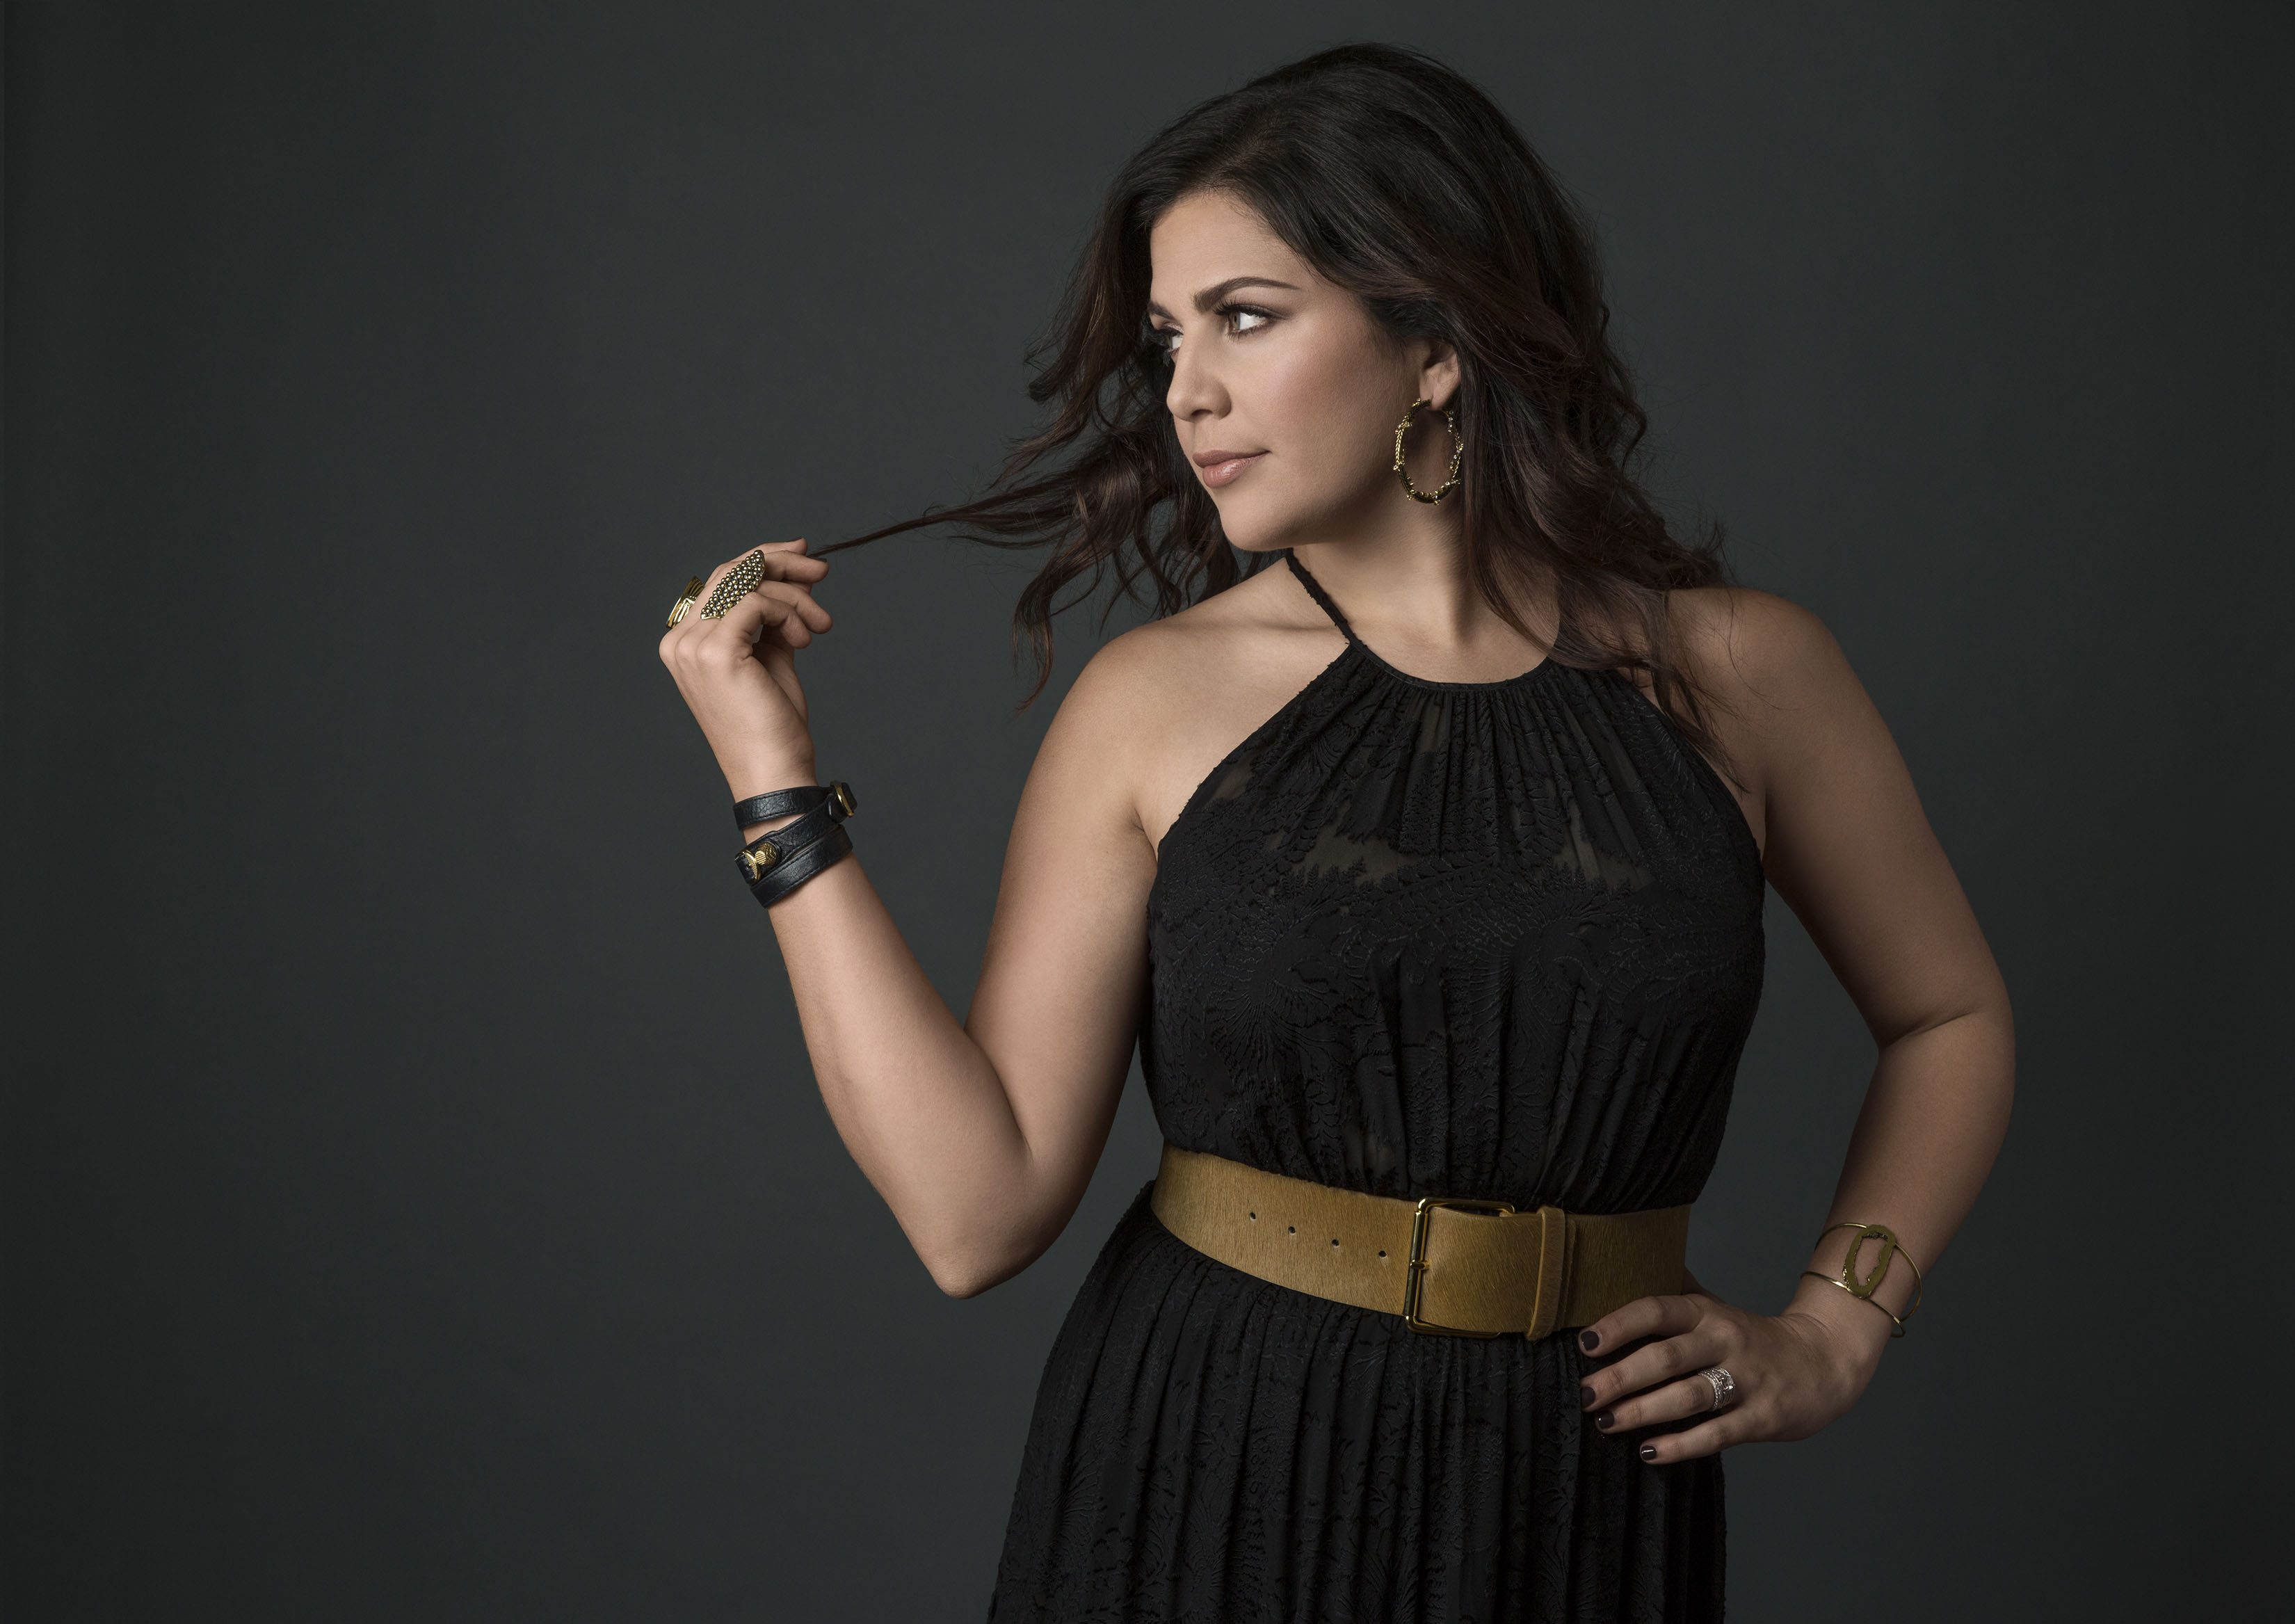 LADY ANTEBELLUM'S HILLARY SCOTT IS EXPECTING TWINS.